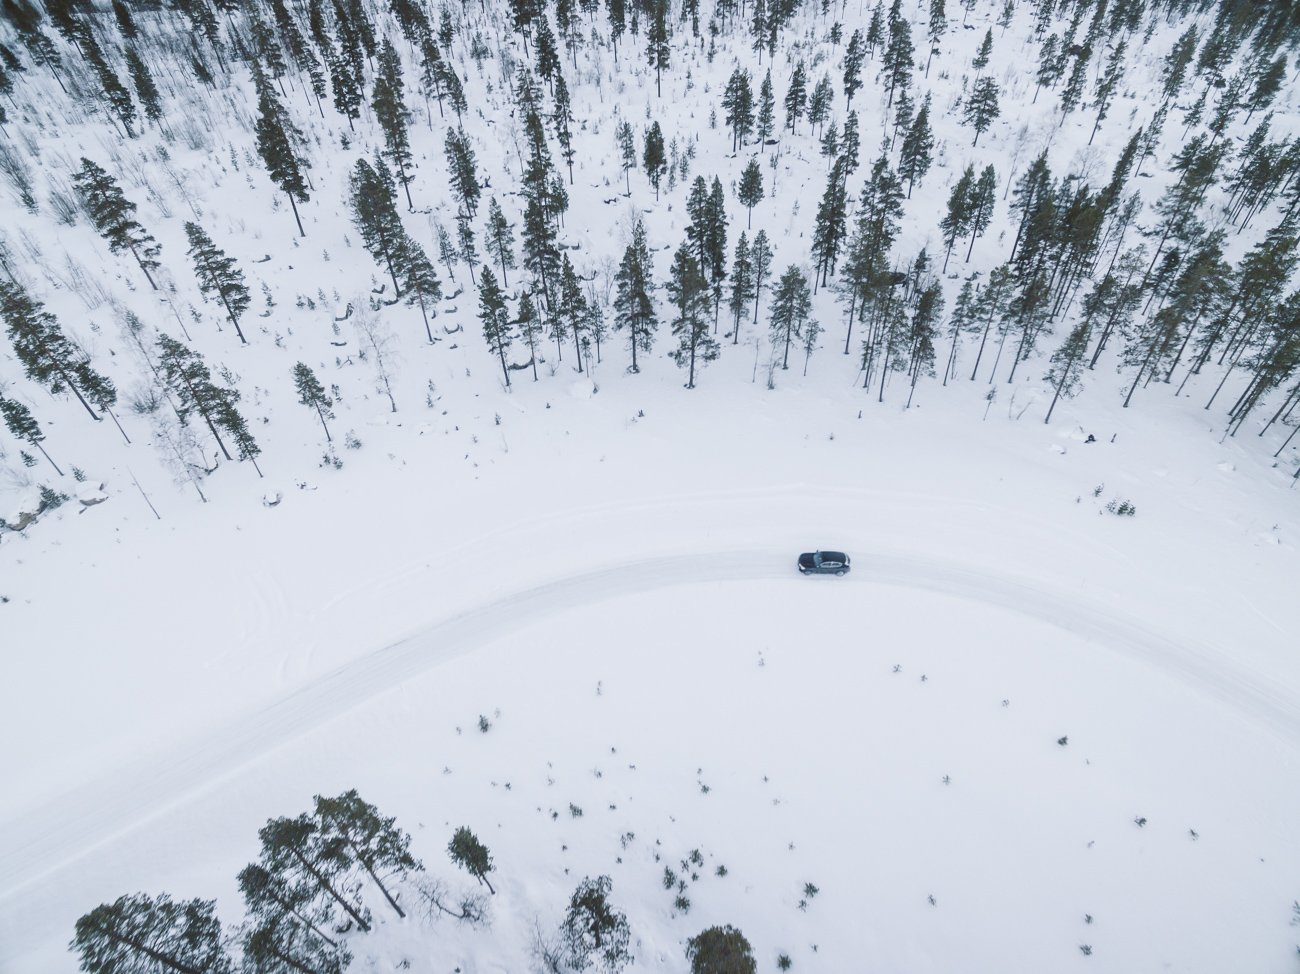 Alfa Romeo test drive in Swedish Lapland as seen from a drone